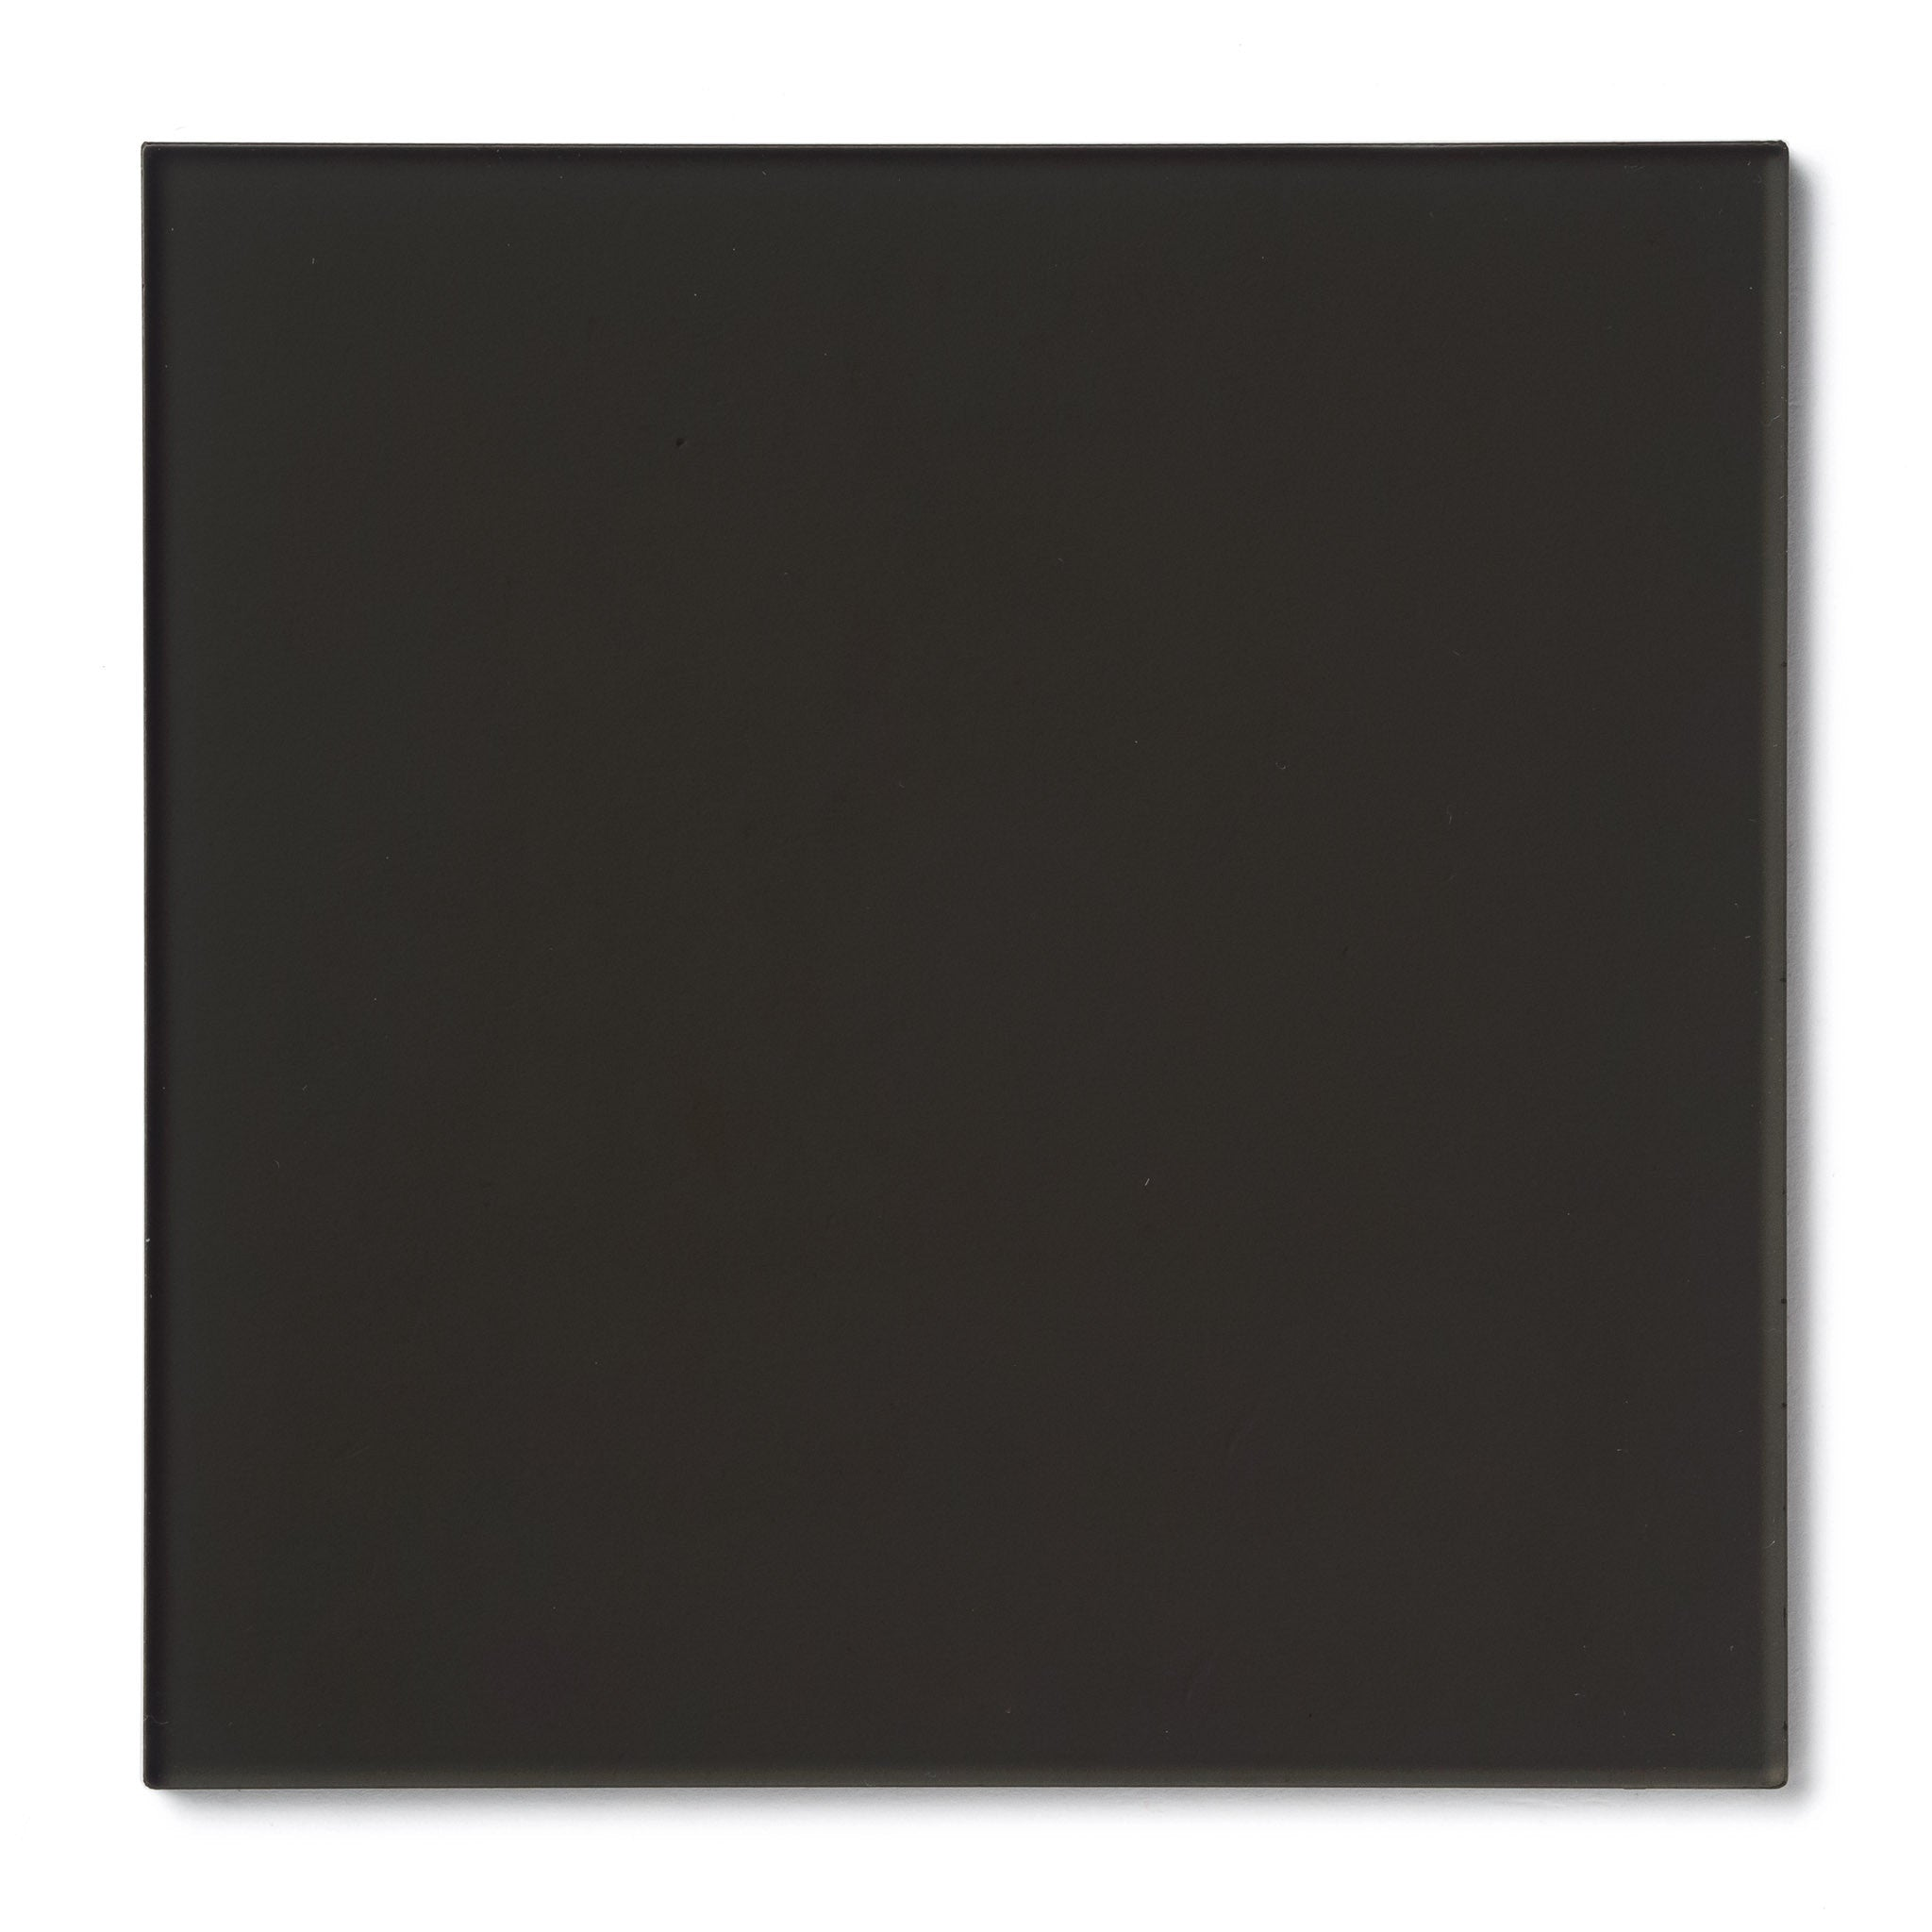 Gray Smoke Acrylic Plexiglass Sheet, color 2064